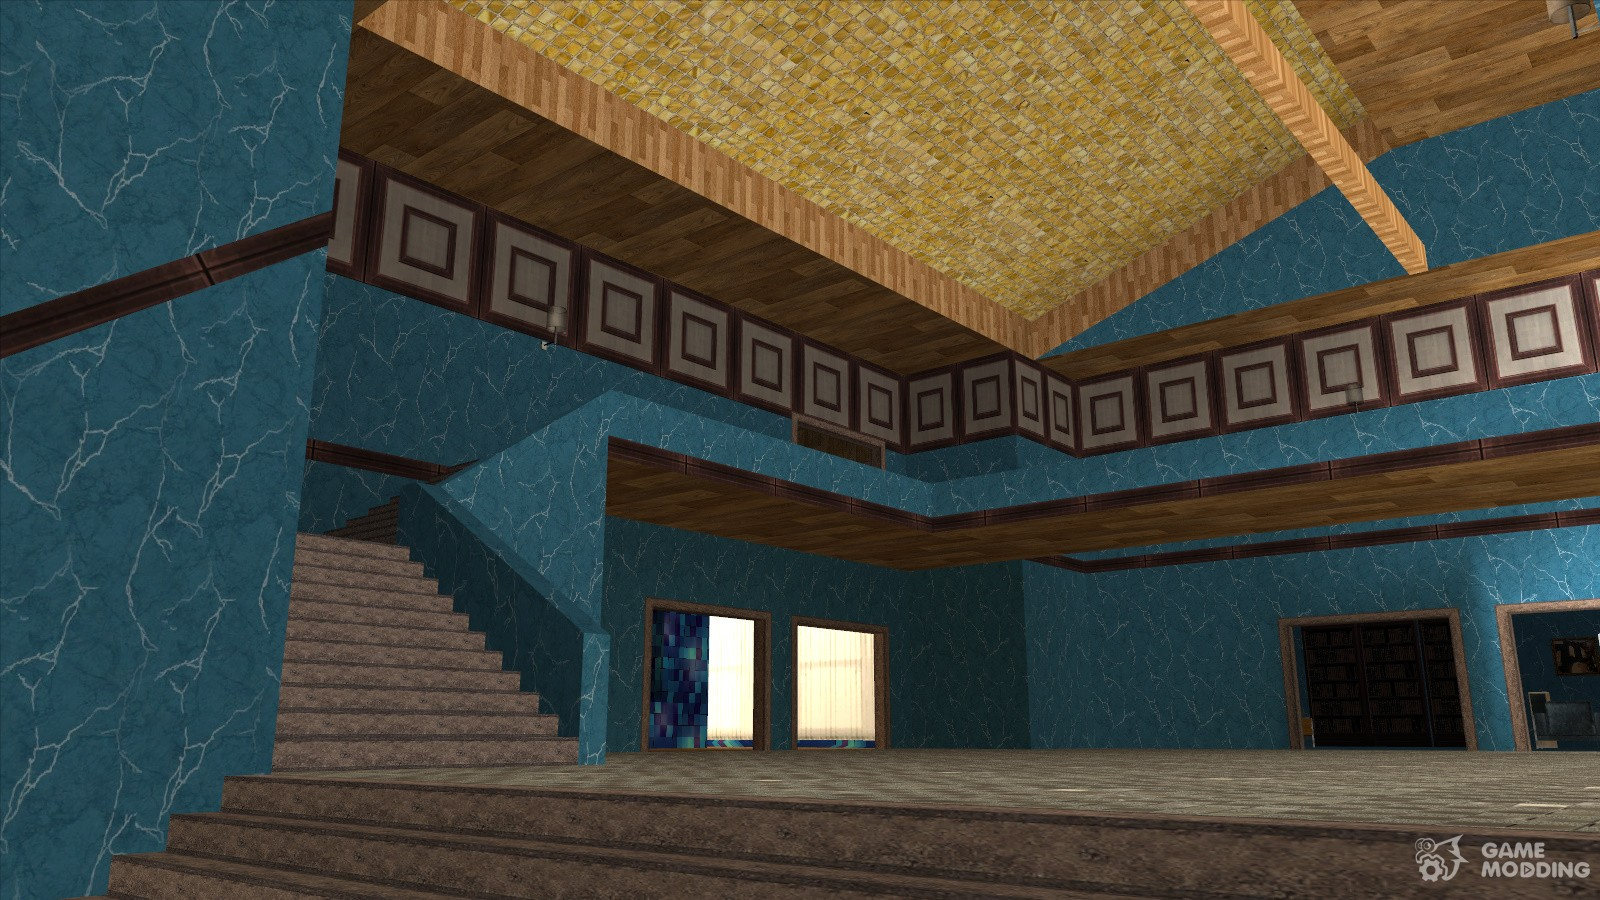 New Textures Of The Interior Of The Mansion Madd Dogg For